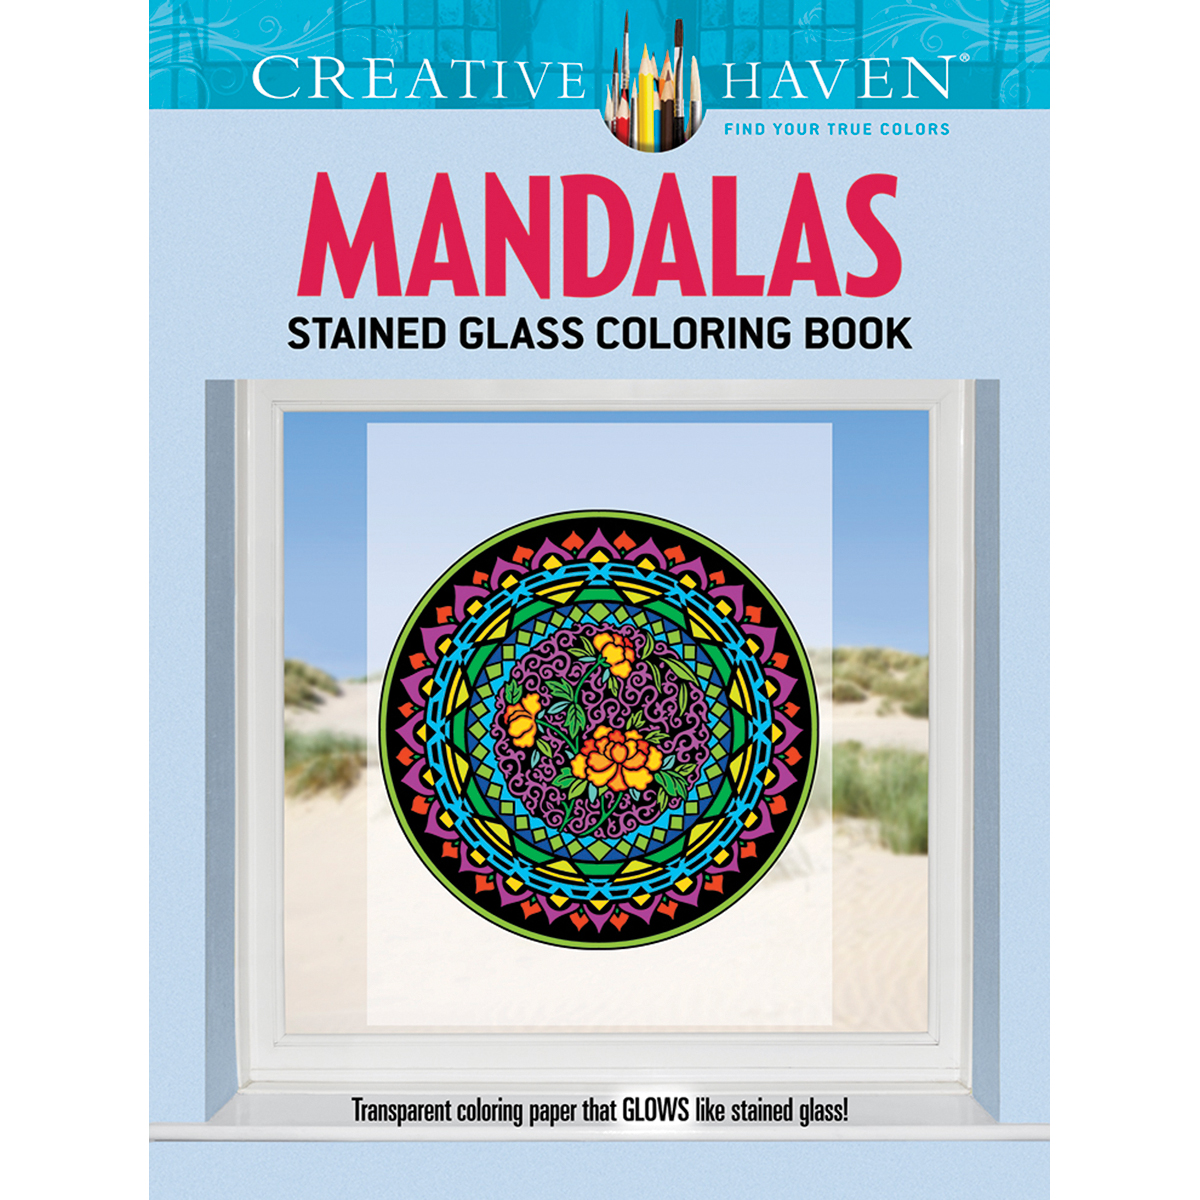 Mandalas Stained Glass Colouring Book